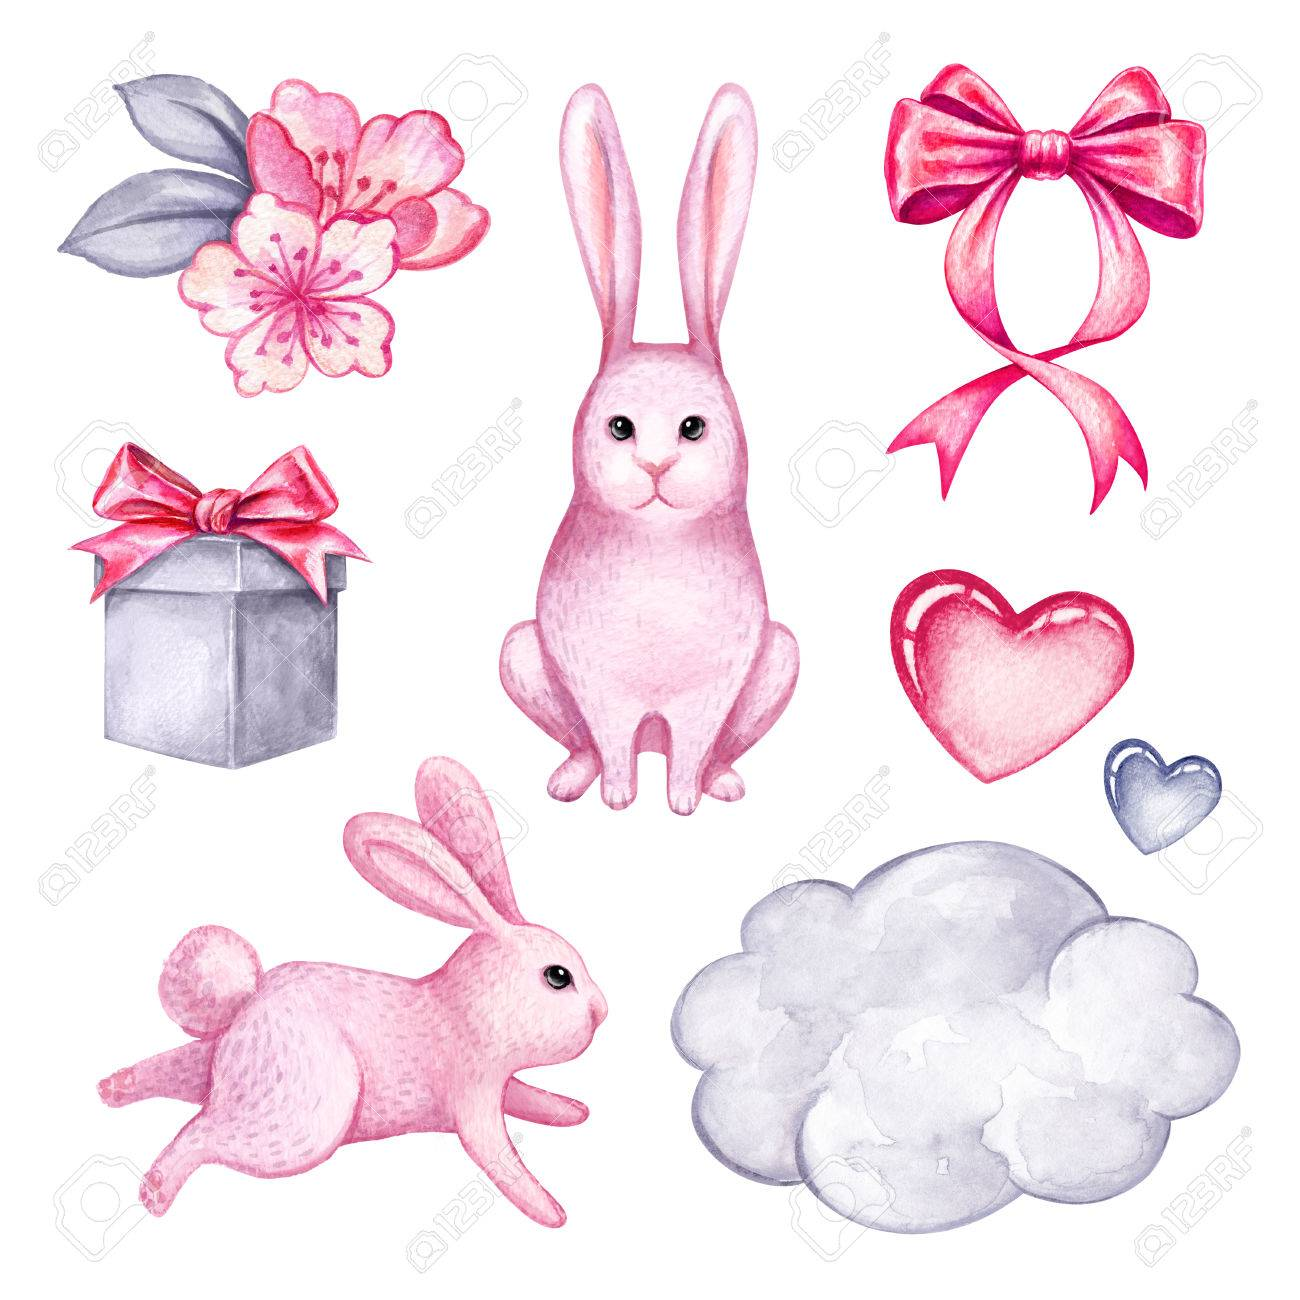 Watercolor illustration pink cute bunny easter rabbit holiday illustration watercolor illustration pink cute bunny easter rabbit holiday gift clip art isolated on white background negle Gallery